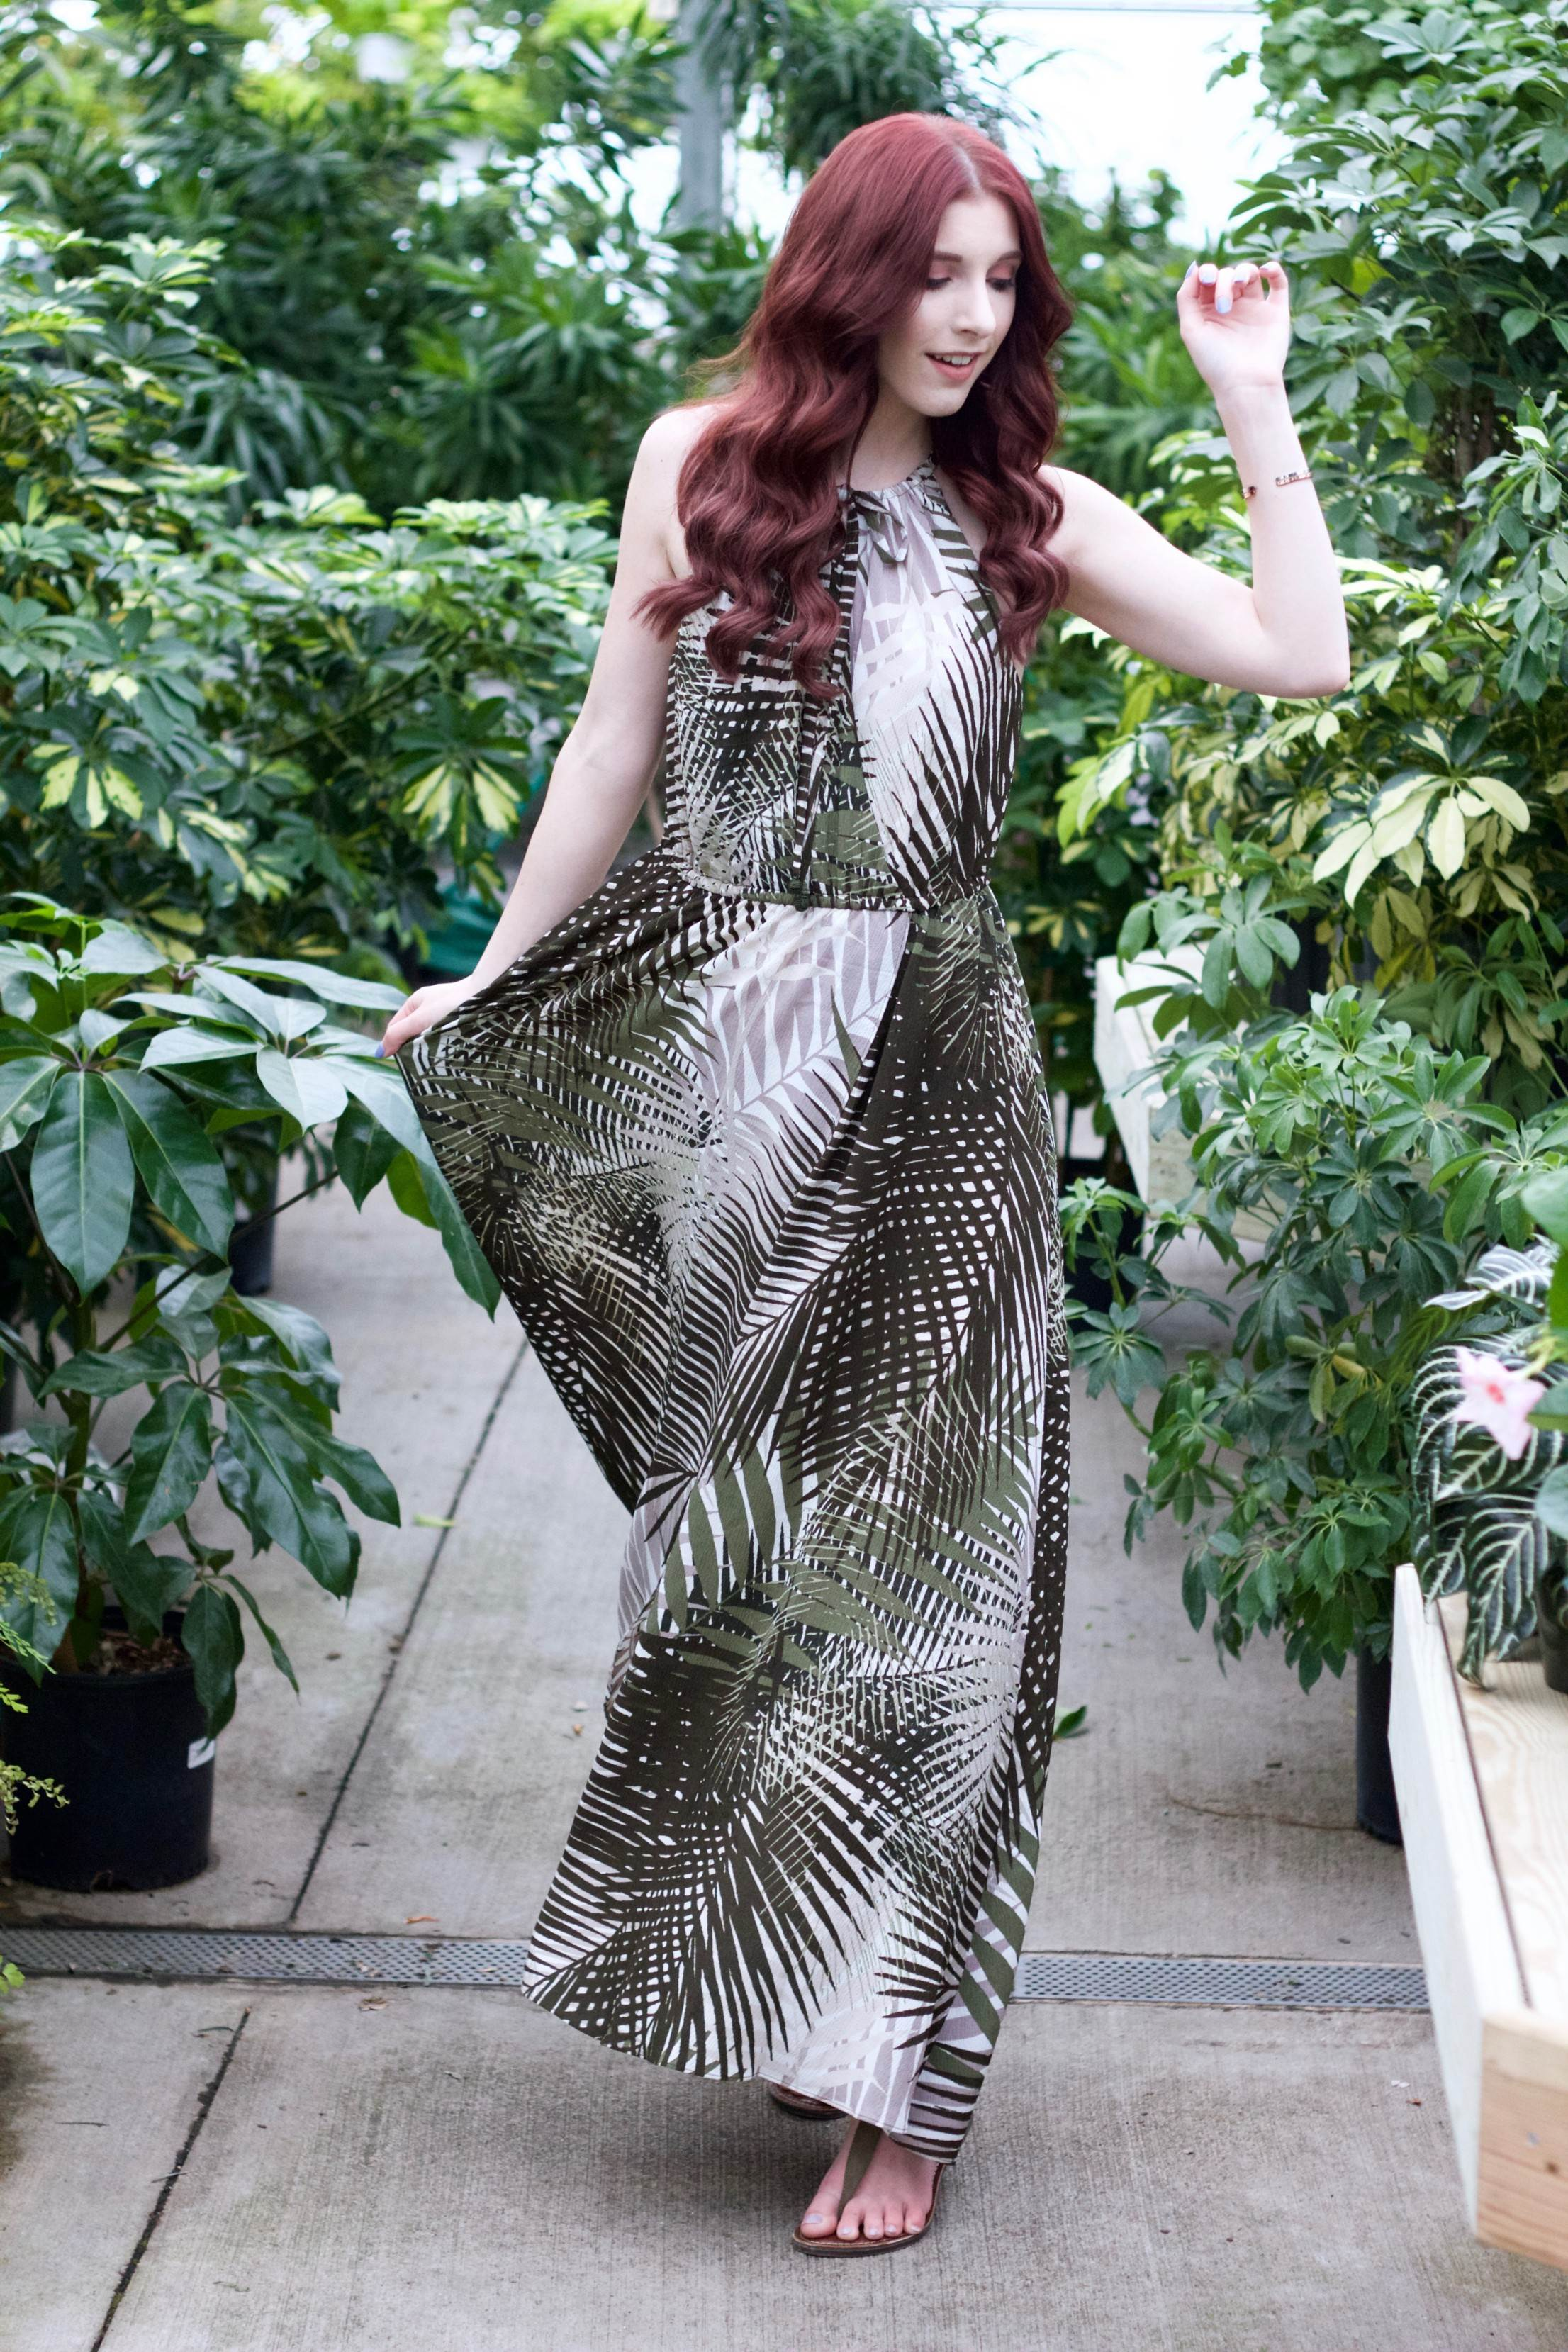 Wanna Get Away?: The Vacation Maxi You Need